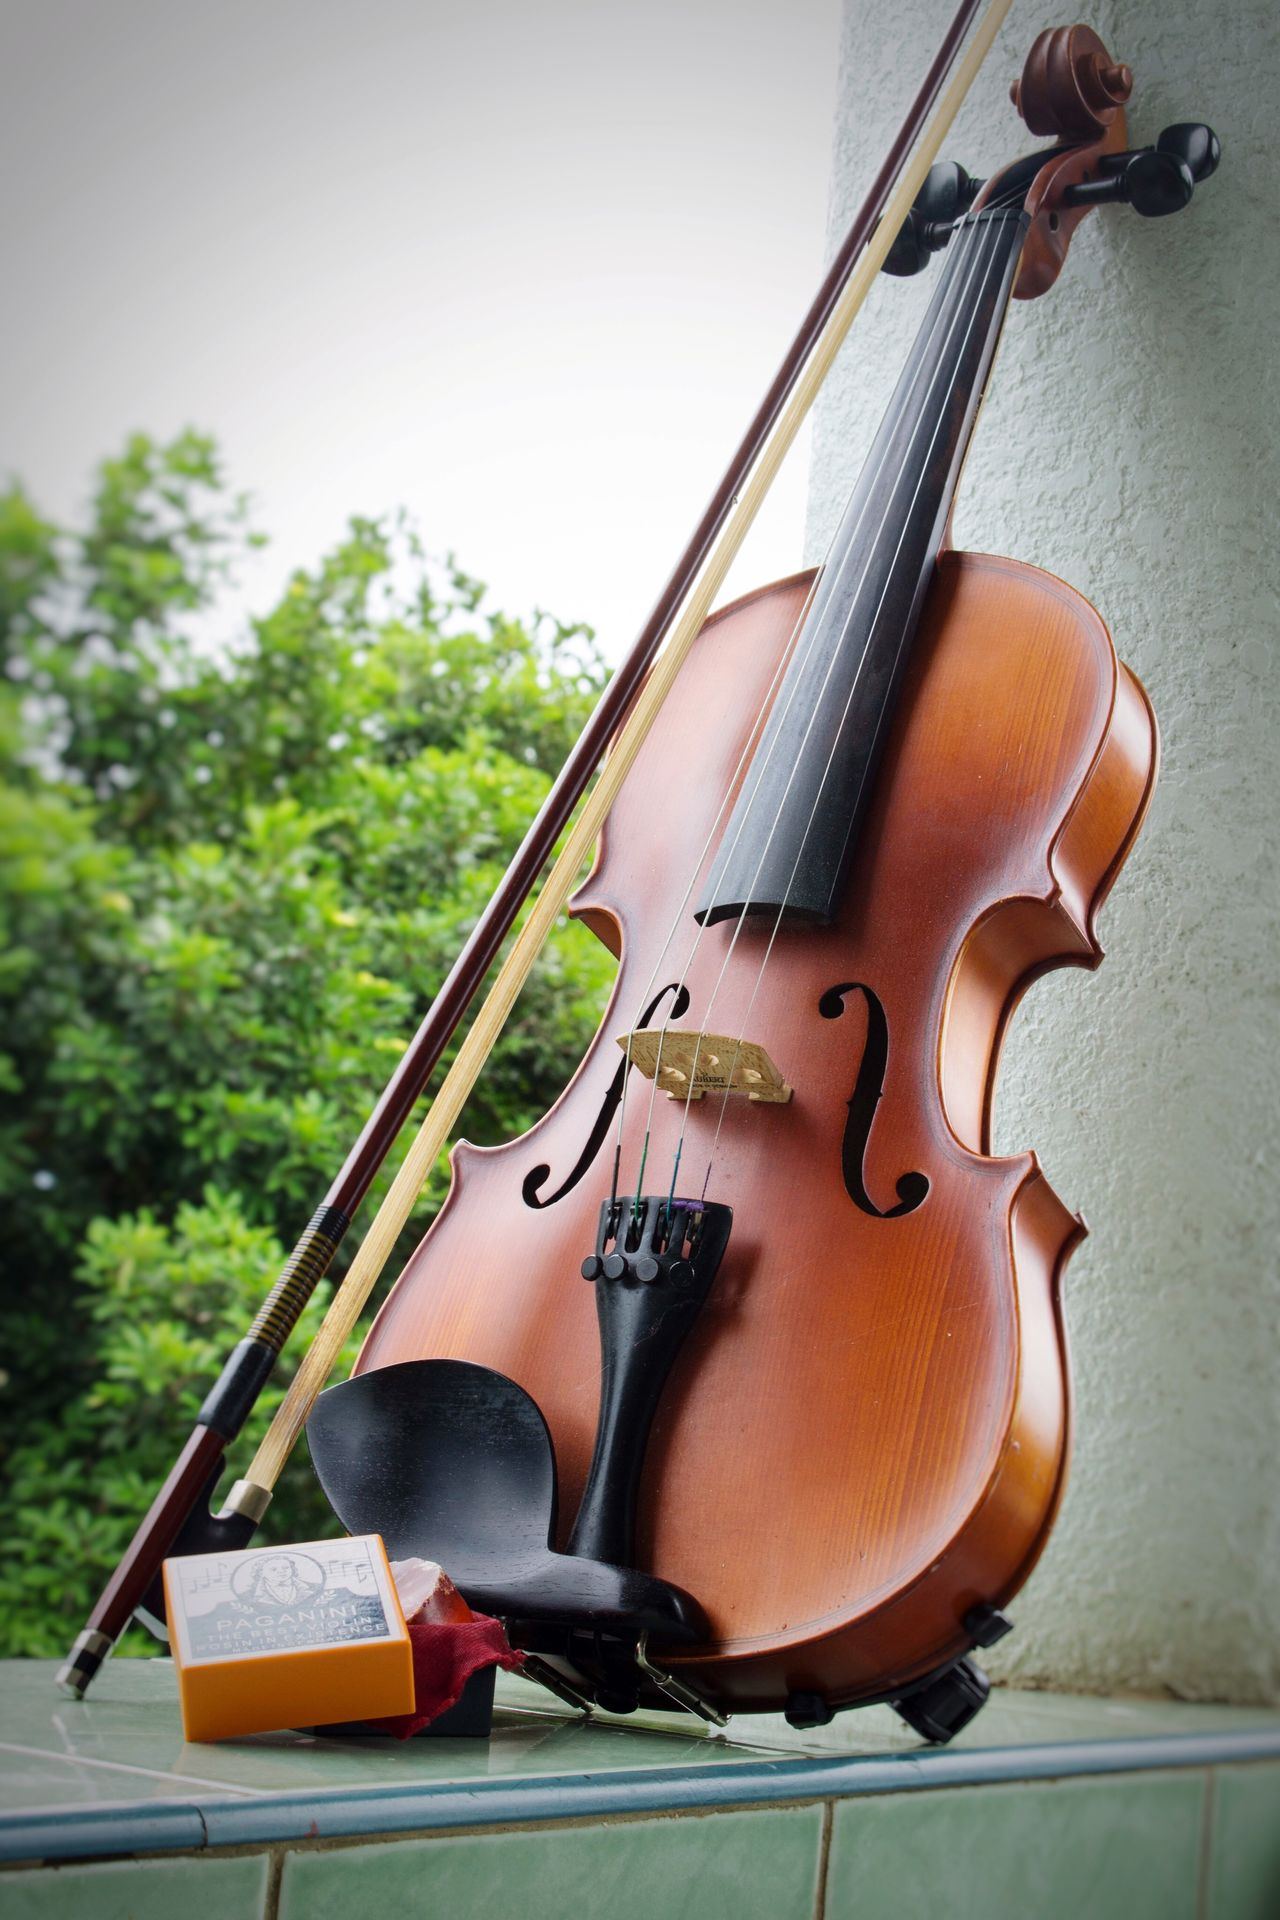 Violin Music Musician Music Photography  Instruments Sandner Germany MADE IN GERMANY BY EYEEM PHOTOS🇩🇪🔝 EyeEm Gallery Wood Classical